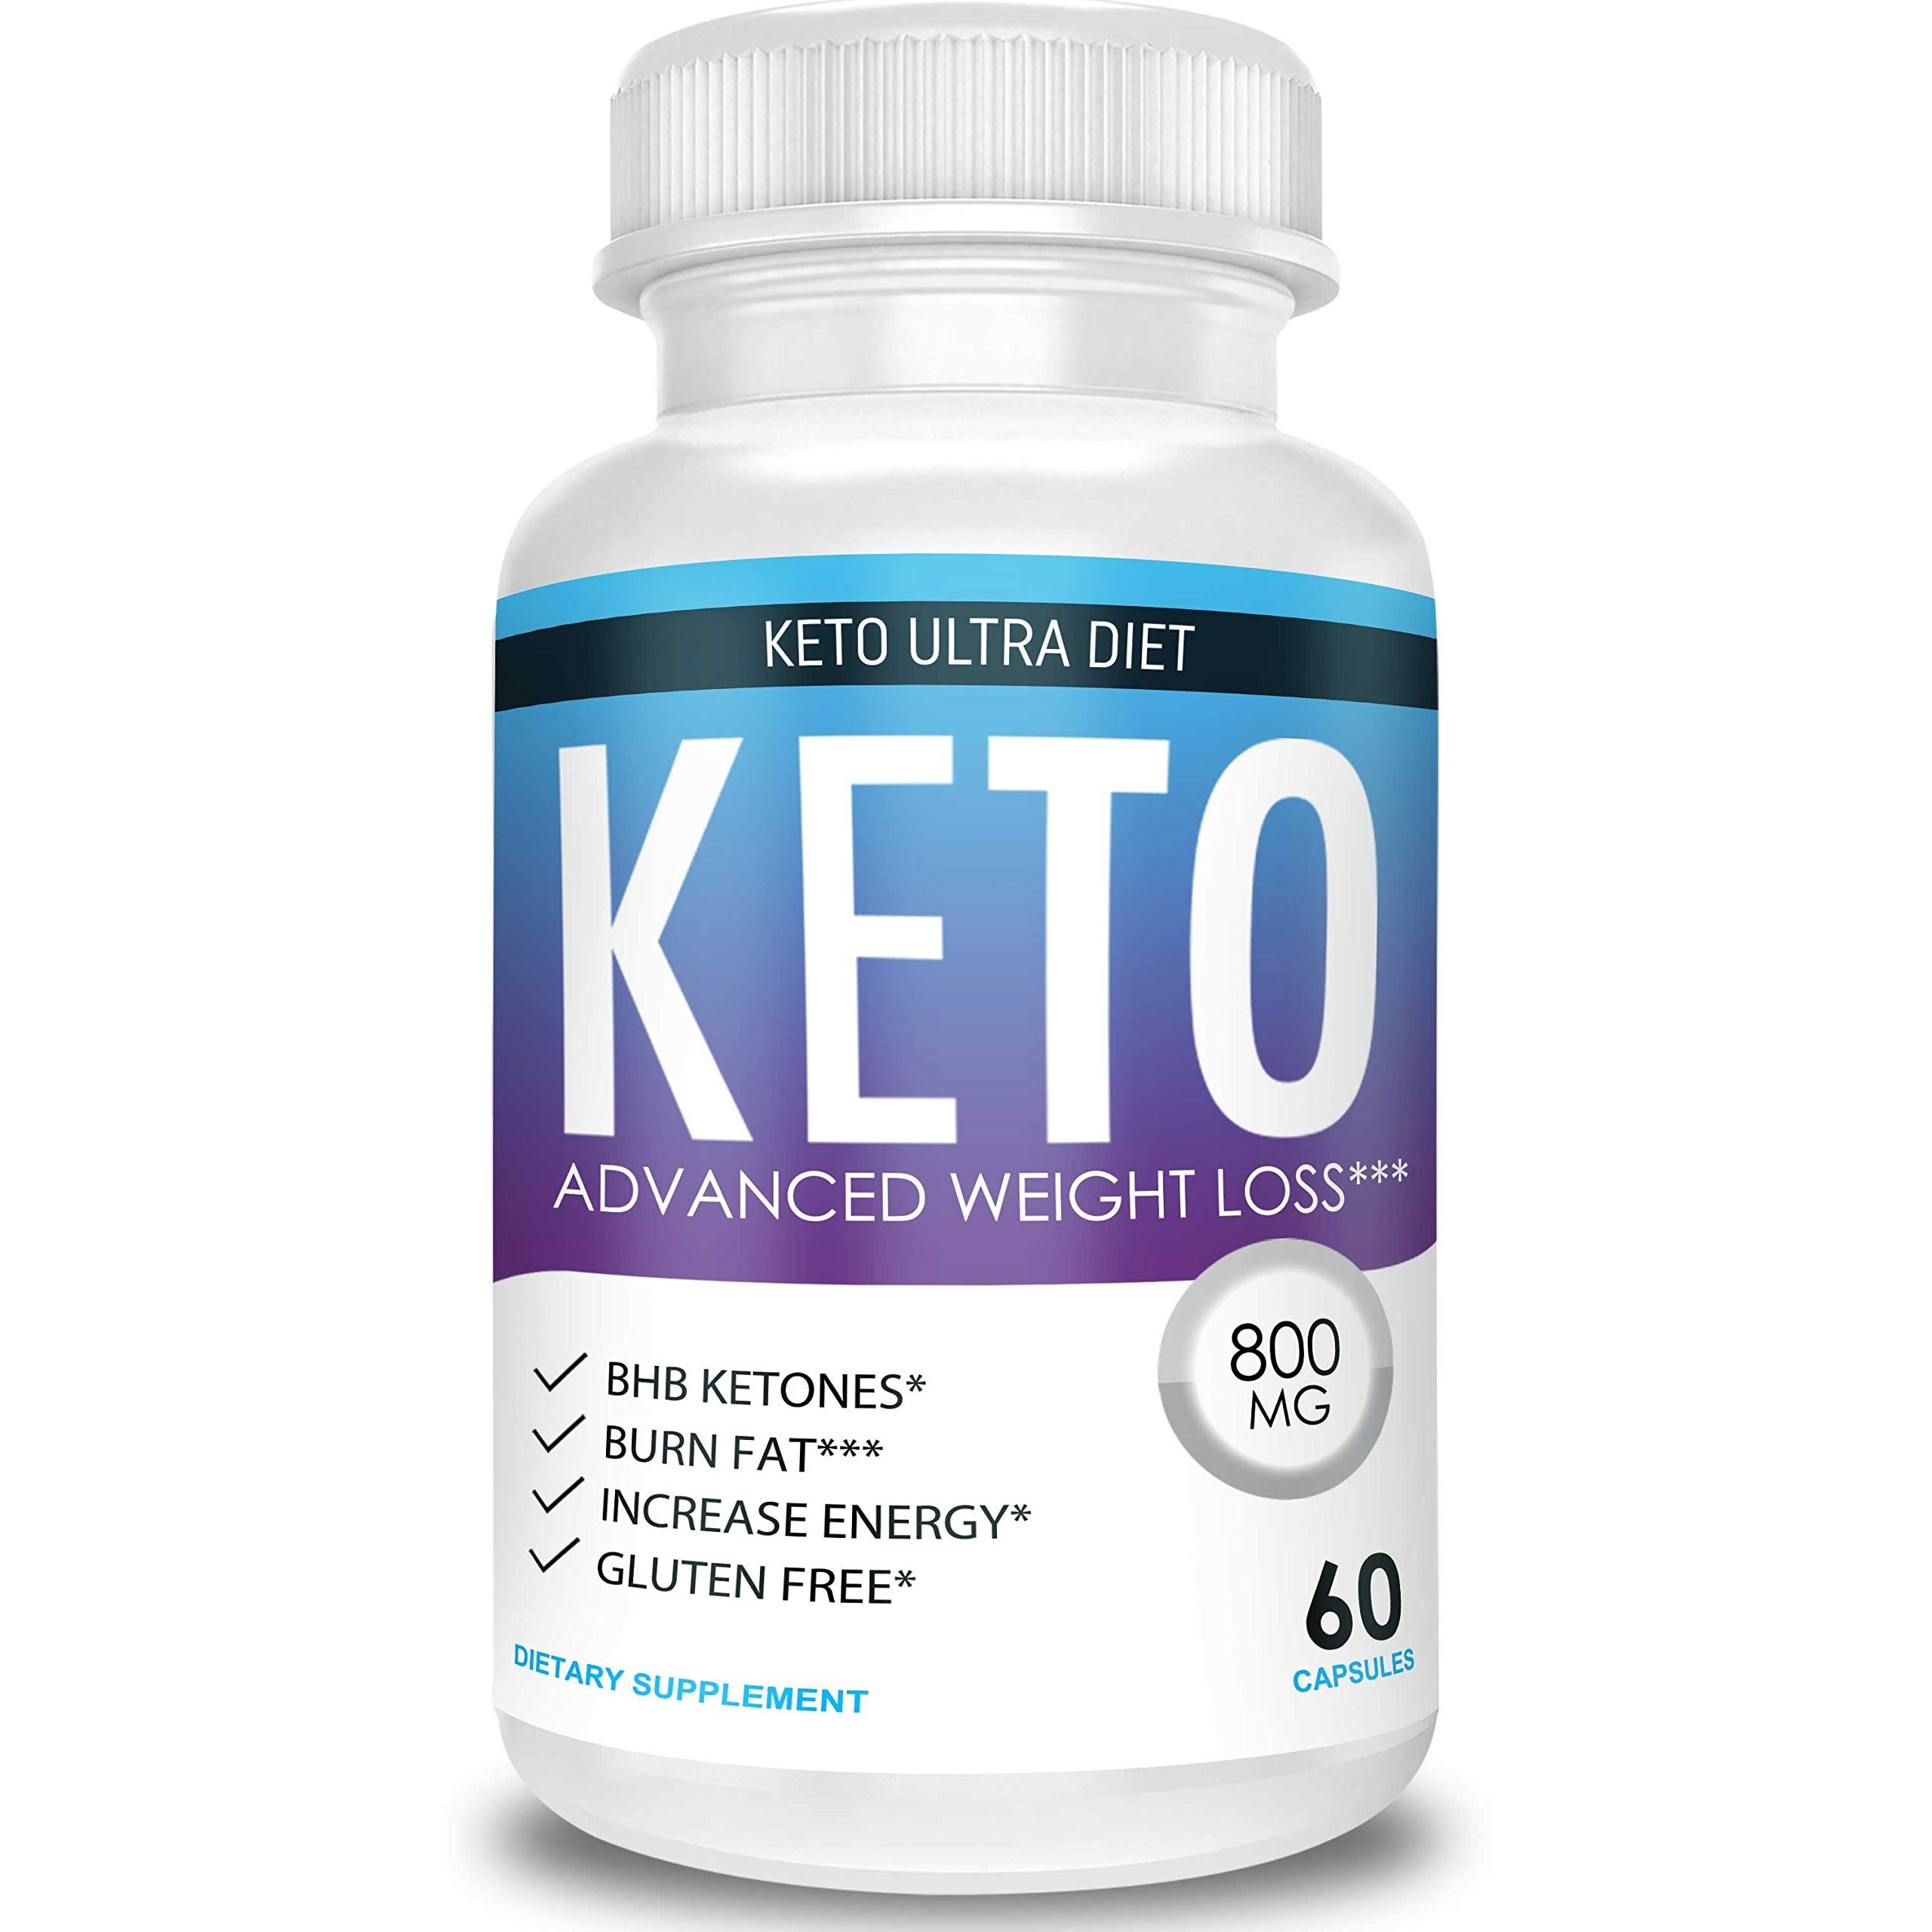 Keto Ultra Diet - Advanced Weight Loss - Ketosis Supplement by Keto Ultra Diet